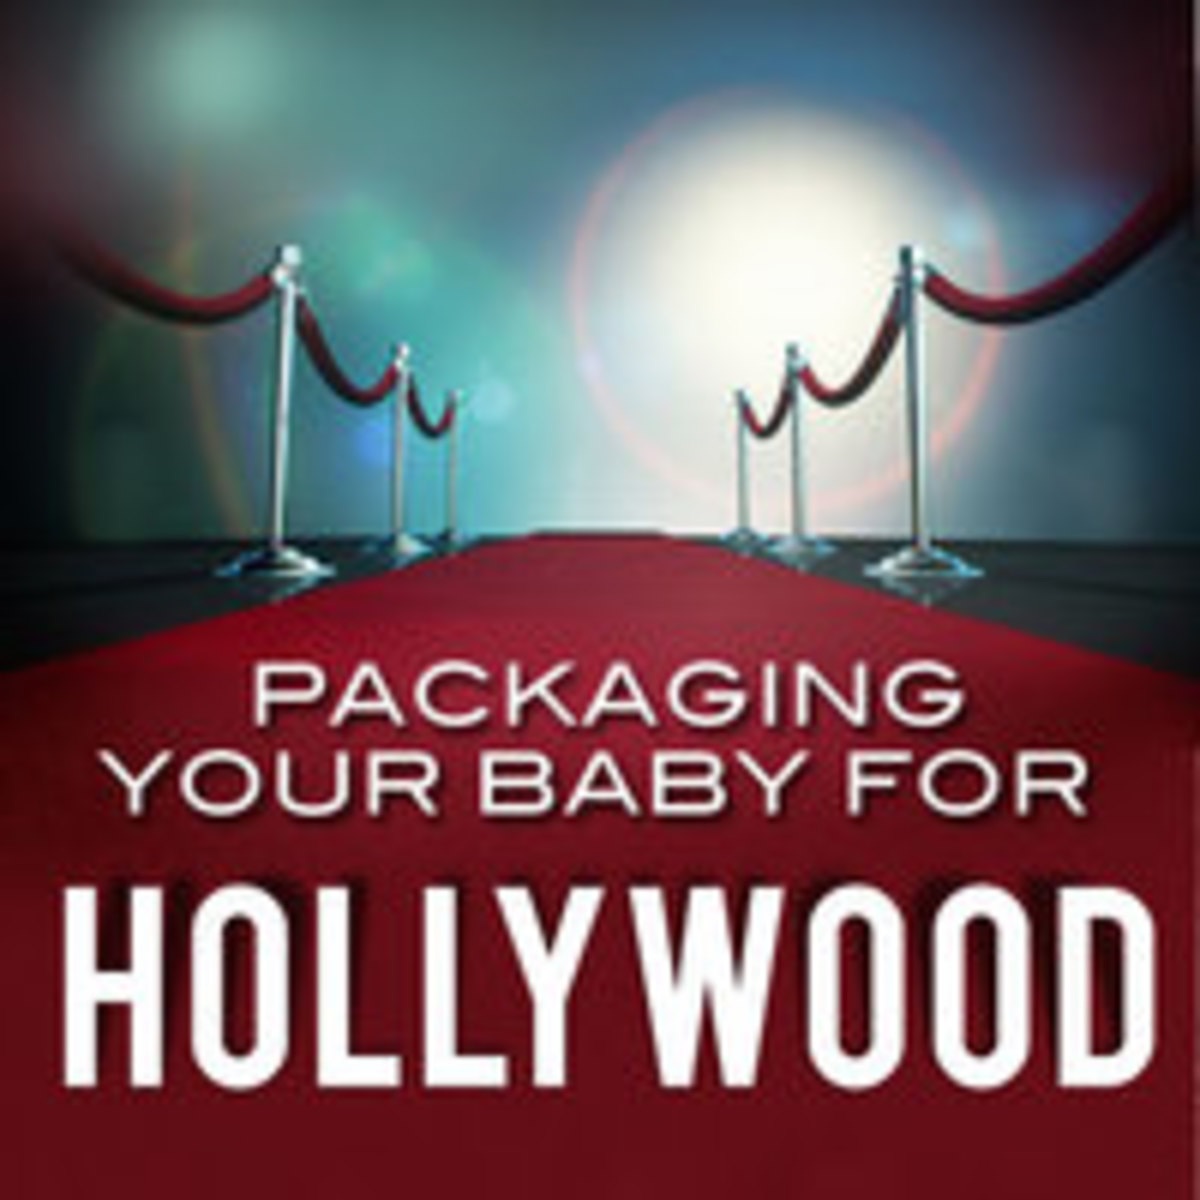 Packaging Your Baby for Hollywood